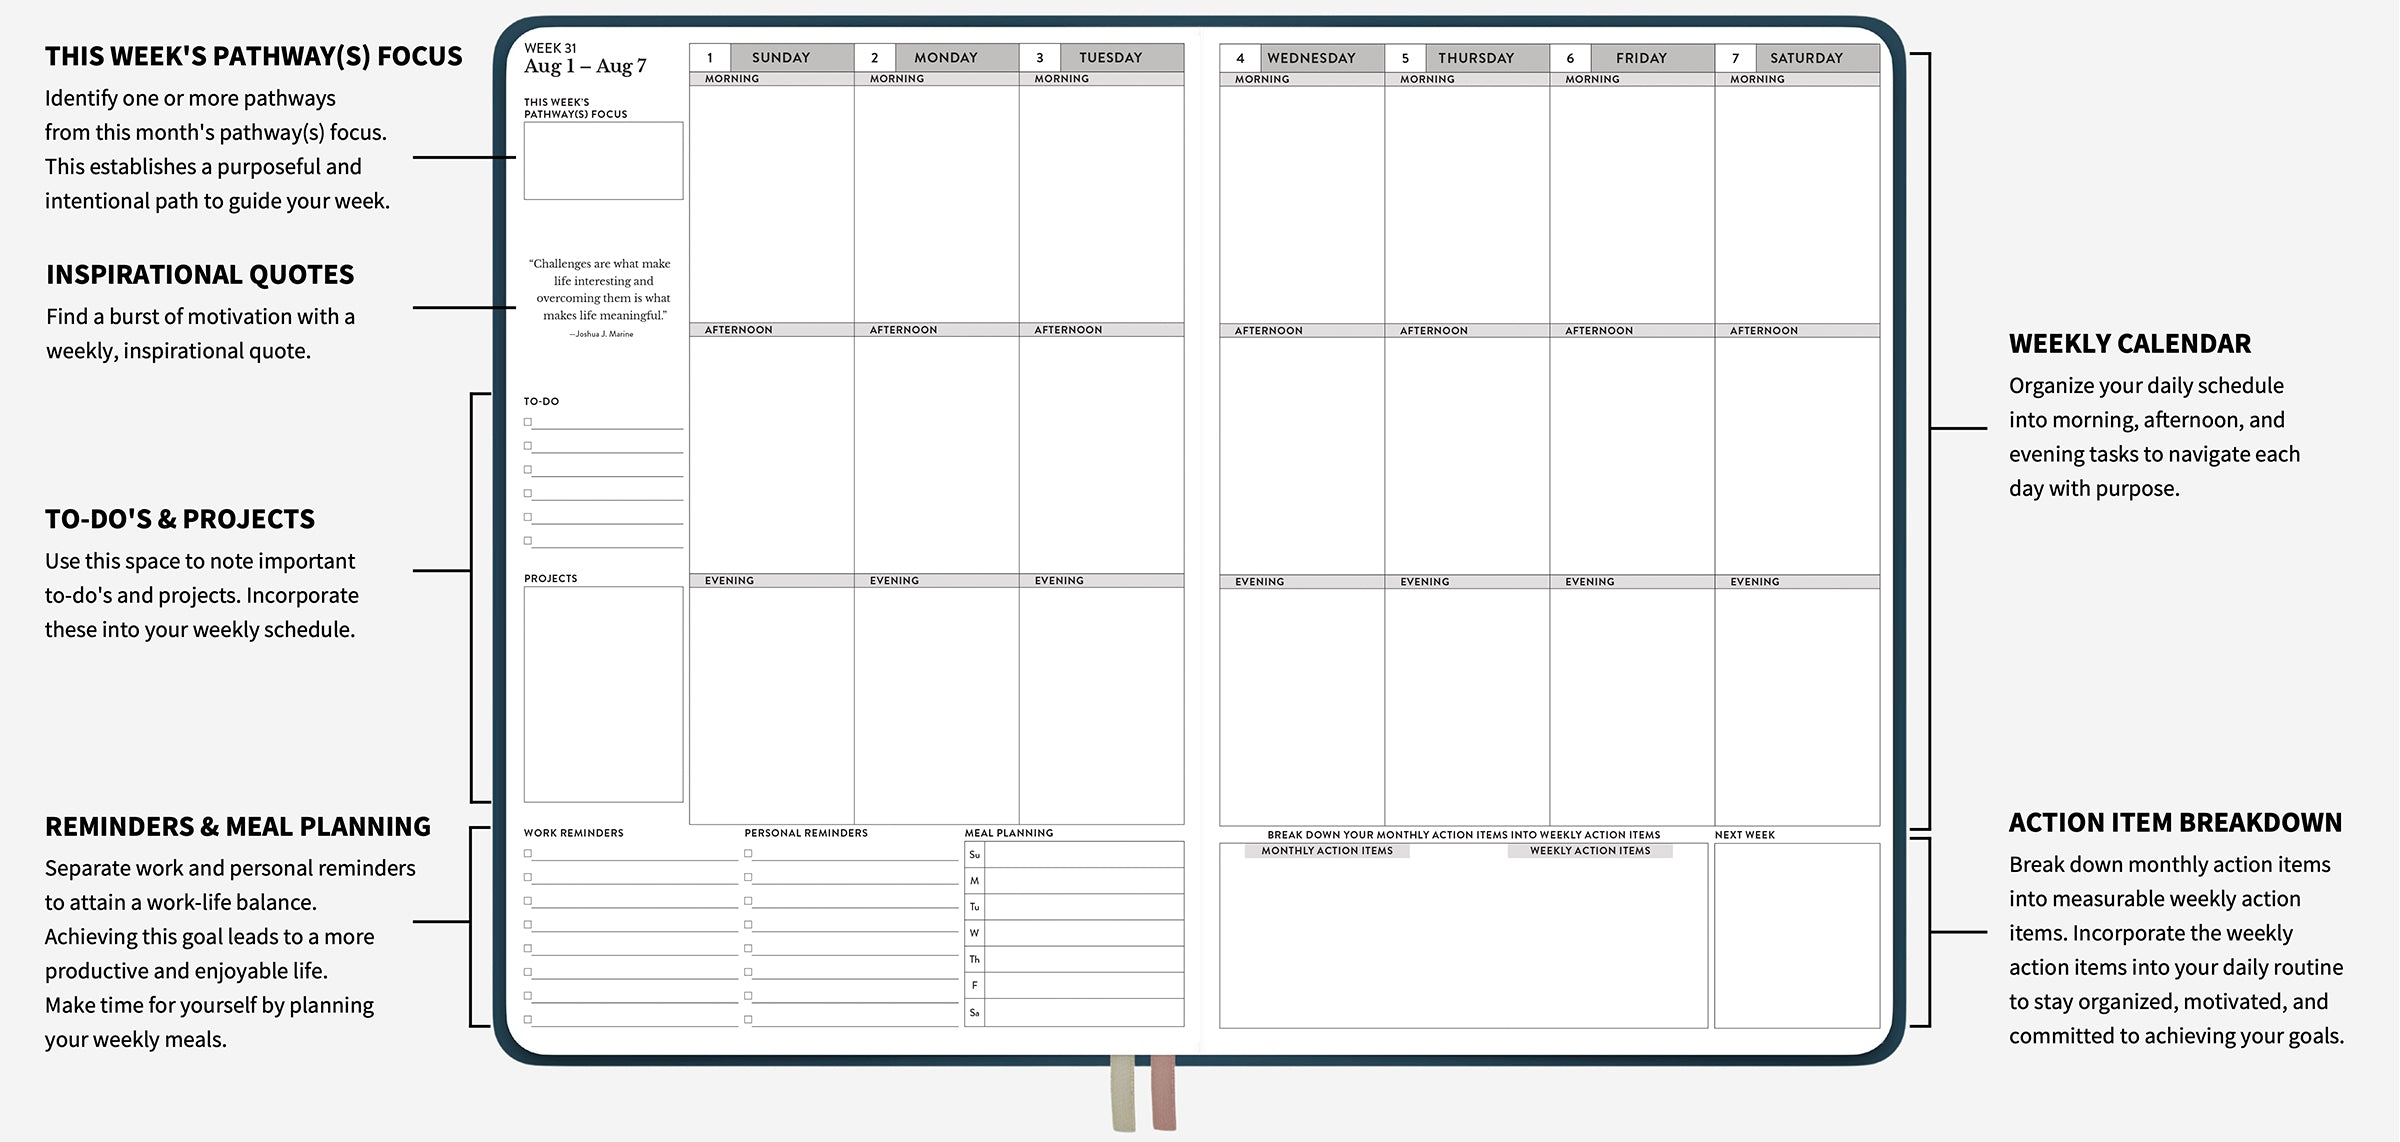 Example of the weekly layout